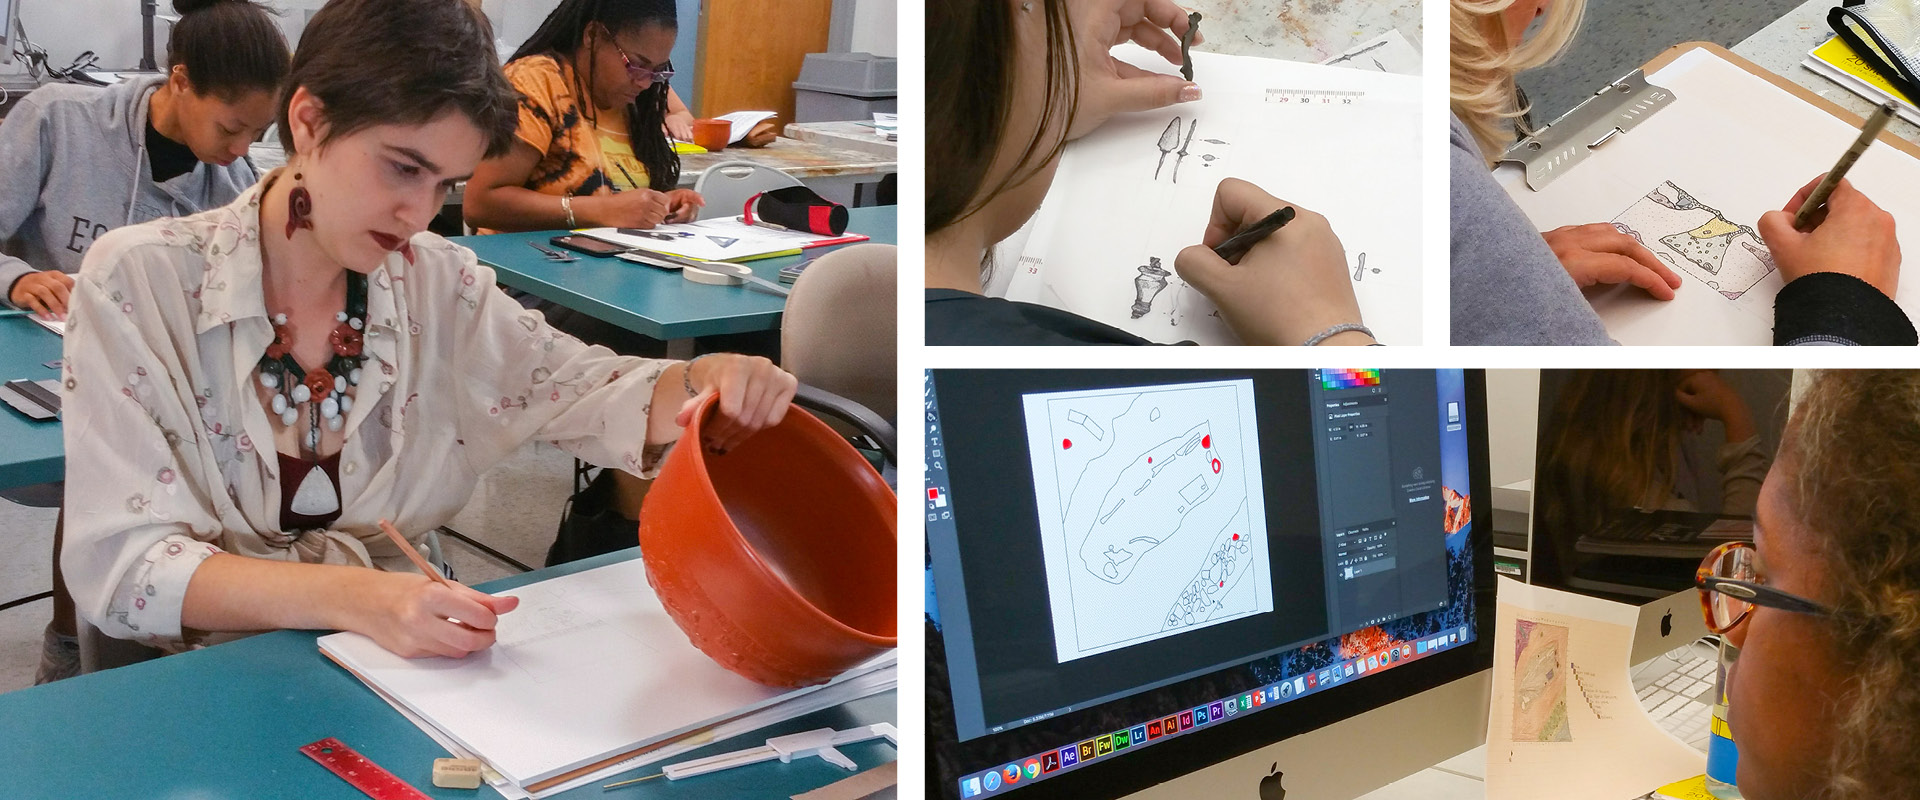 archeological illustration special topics course